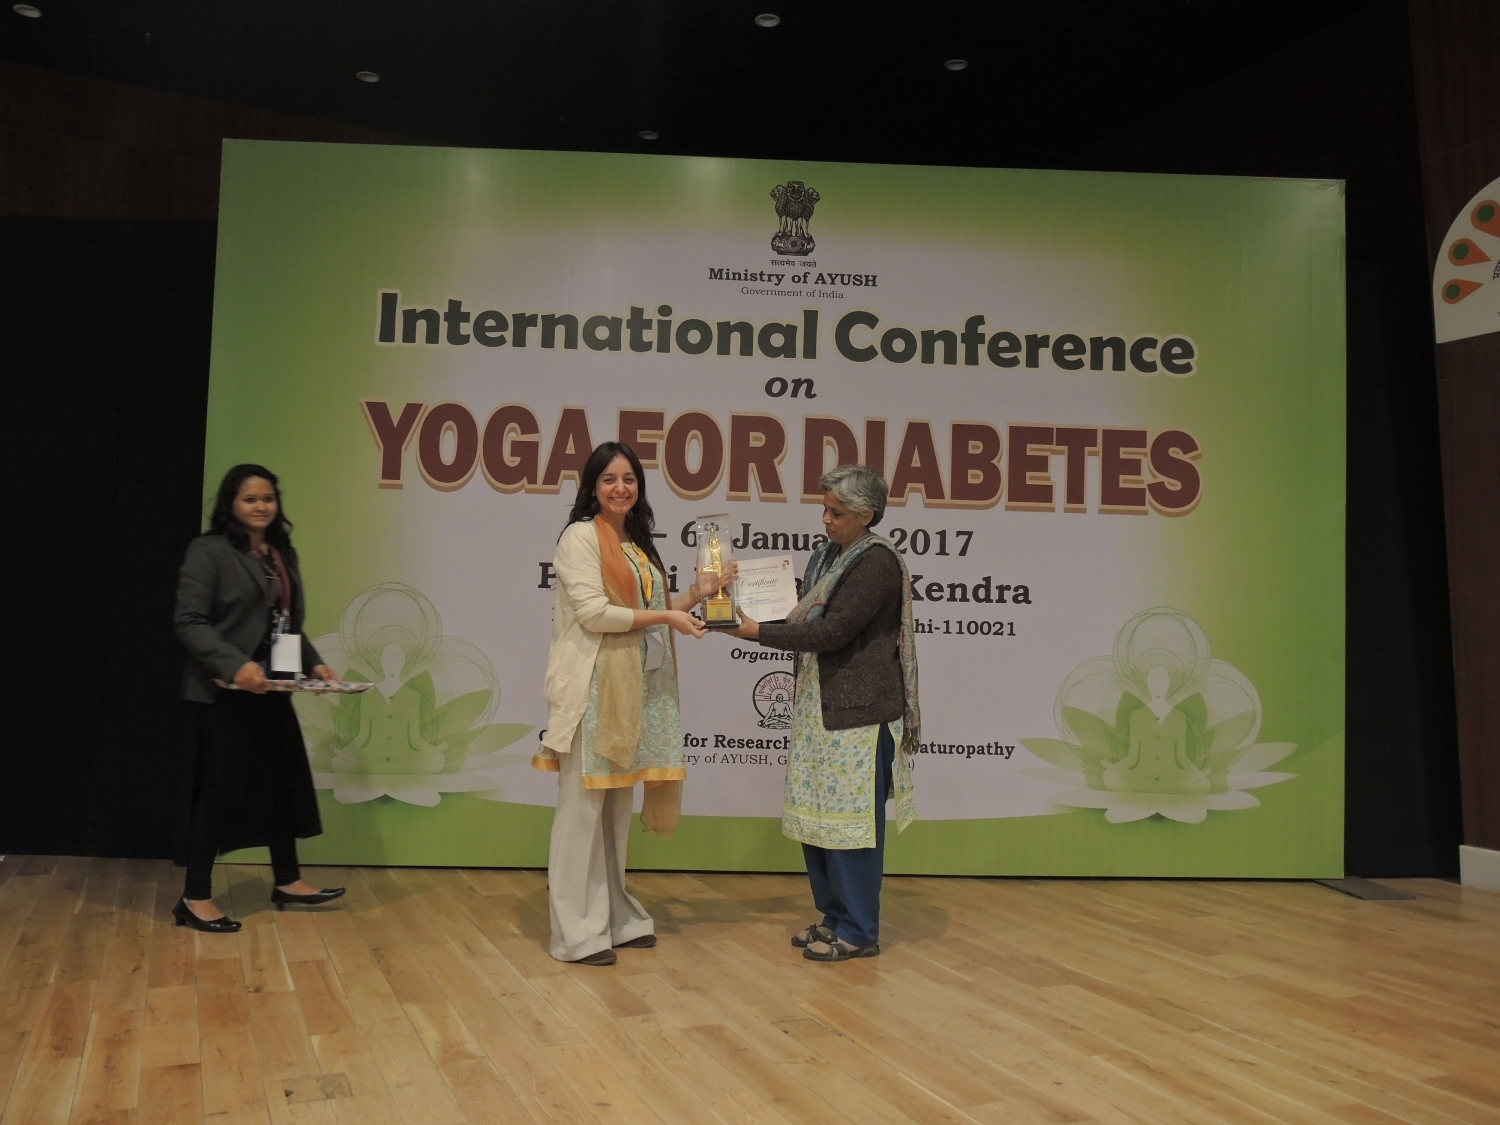 International Conference on Yoga and Diabetes - Índia, Dillí - 2017, Janeiro - Central Council for Research in Yoga & Naturopathy